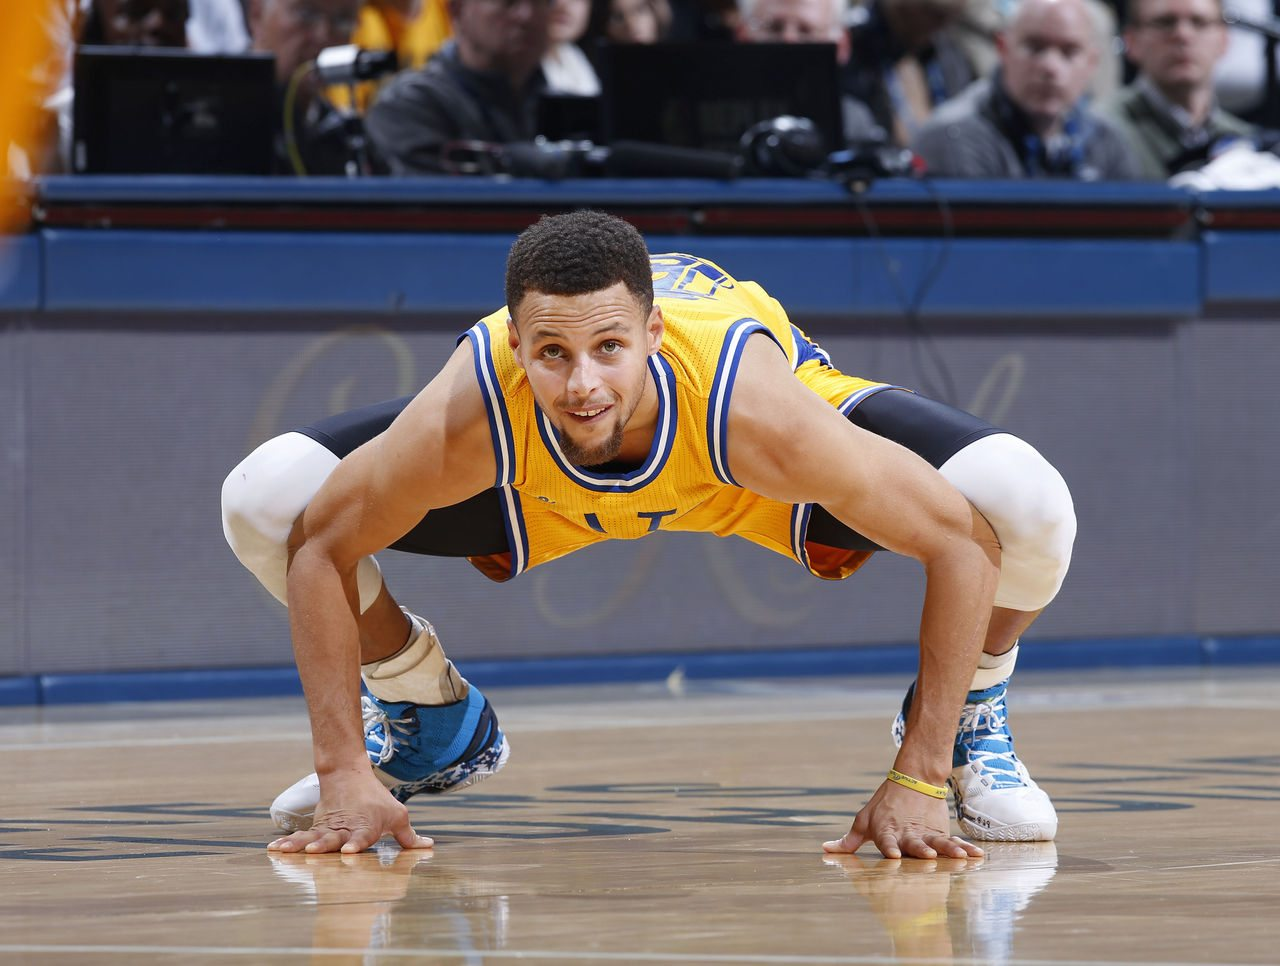 Steph Curry's height, feet